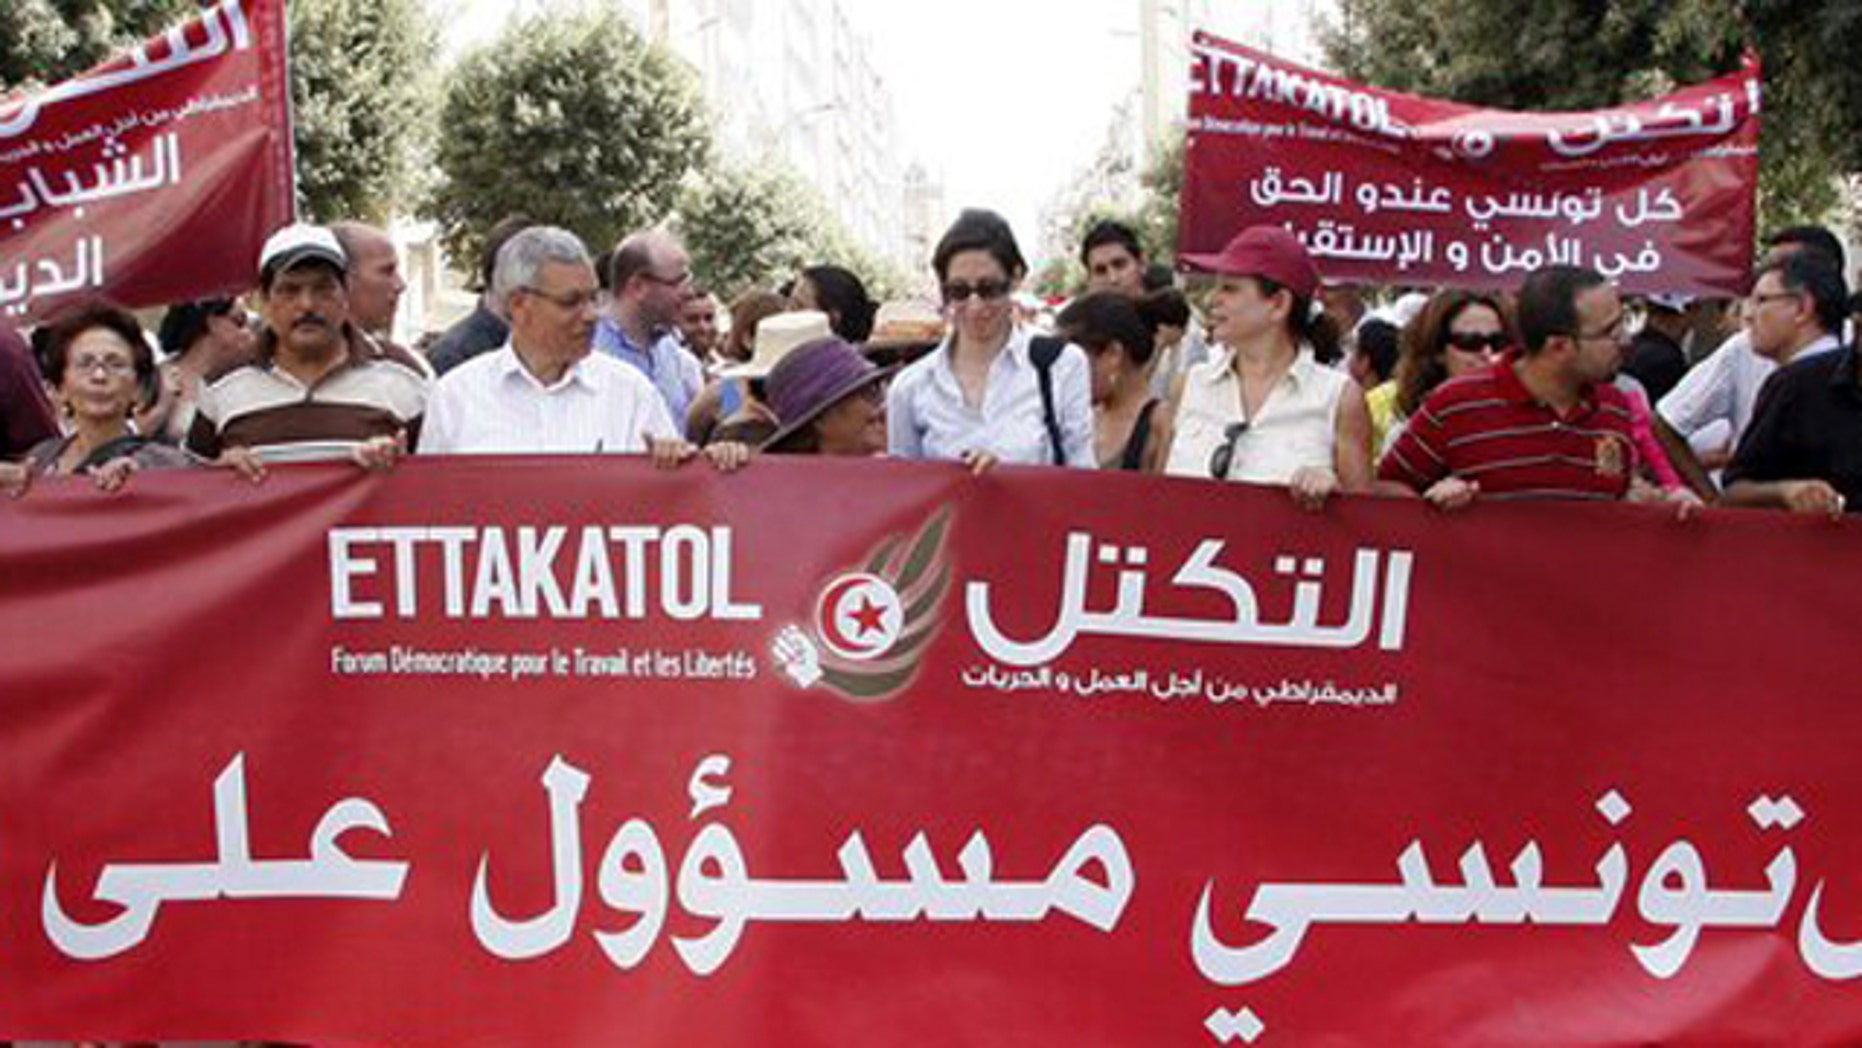 """Demonstrators from a dozen of political parties hold a banner reading """"Each Tunisian is responsible for his country"""" during a march against violence in Tunis , Thursday, July 21, 2011 as Tunisia prepares for landmark Oct. 23 elections for a body meant to write a new constitution. Banner at right behind reads: Any Tunisian has the right to security."""